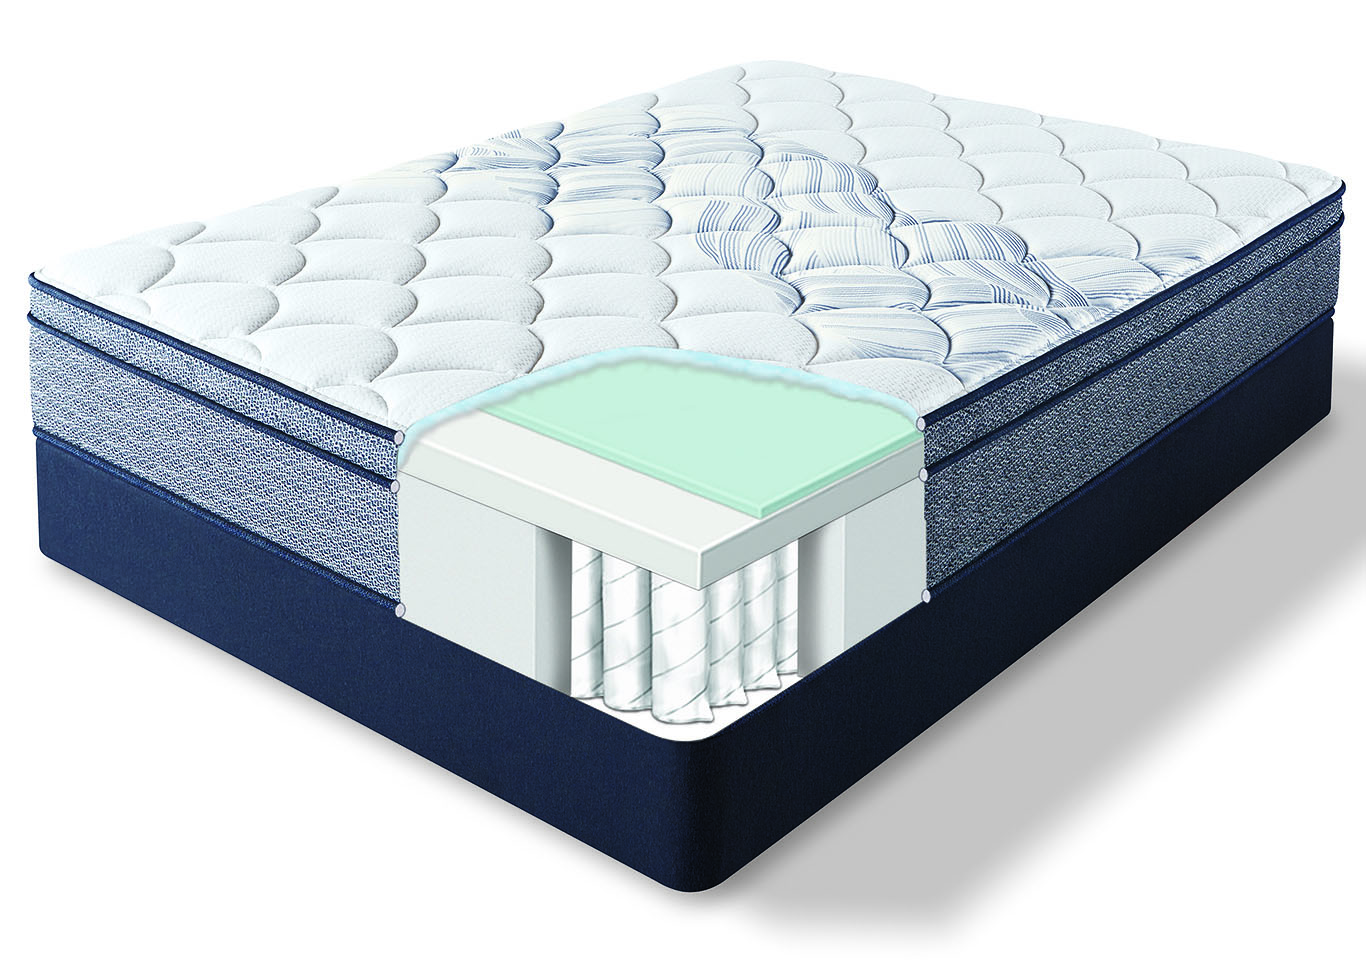 Elkins II Euro Top Plush King Mattress,Huffman Koos